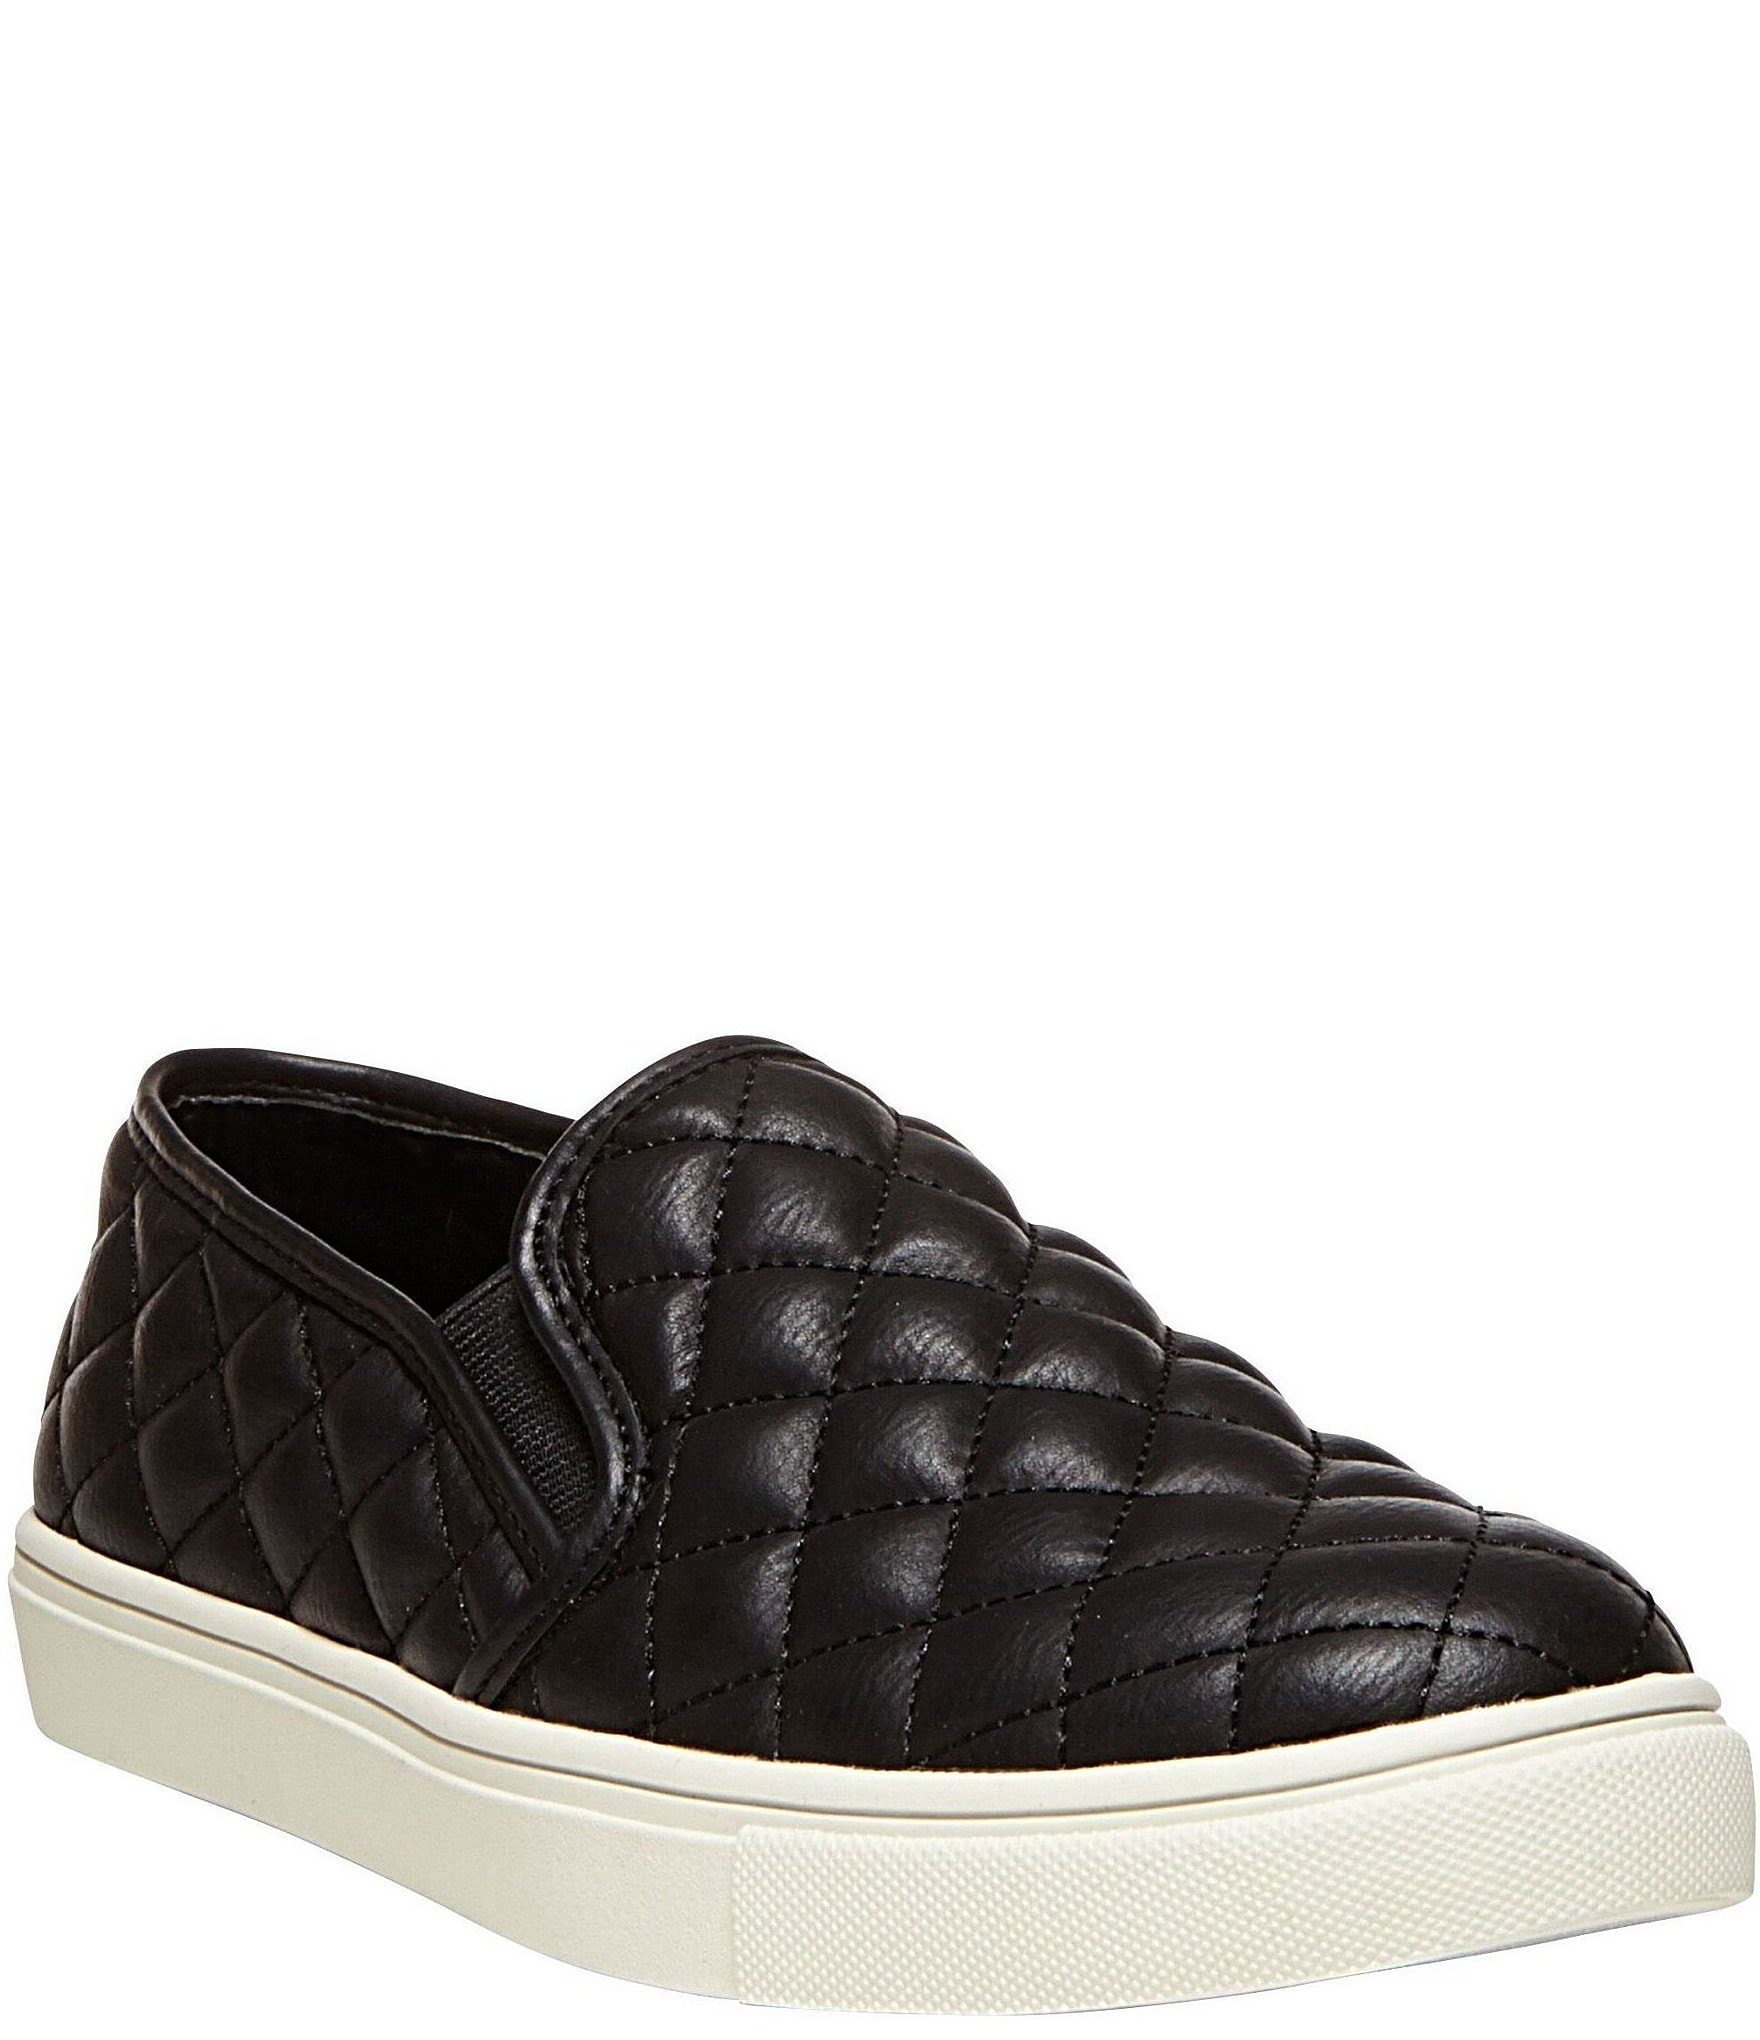 10dfd9e92a5 steve madden sneakers  Shoes for Women